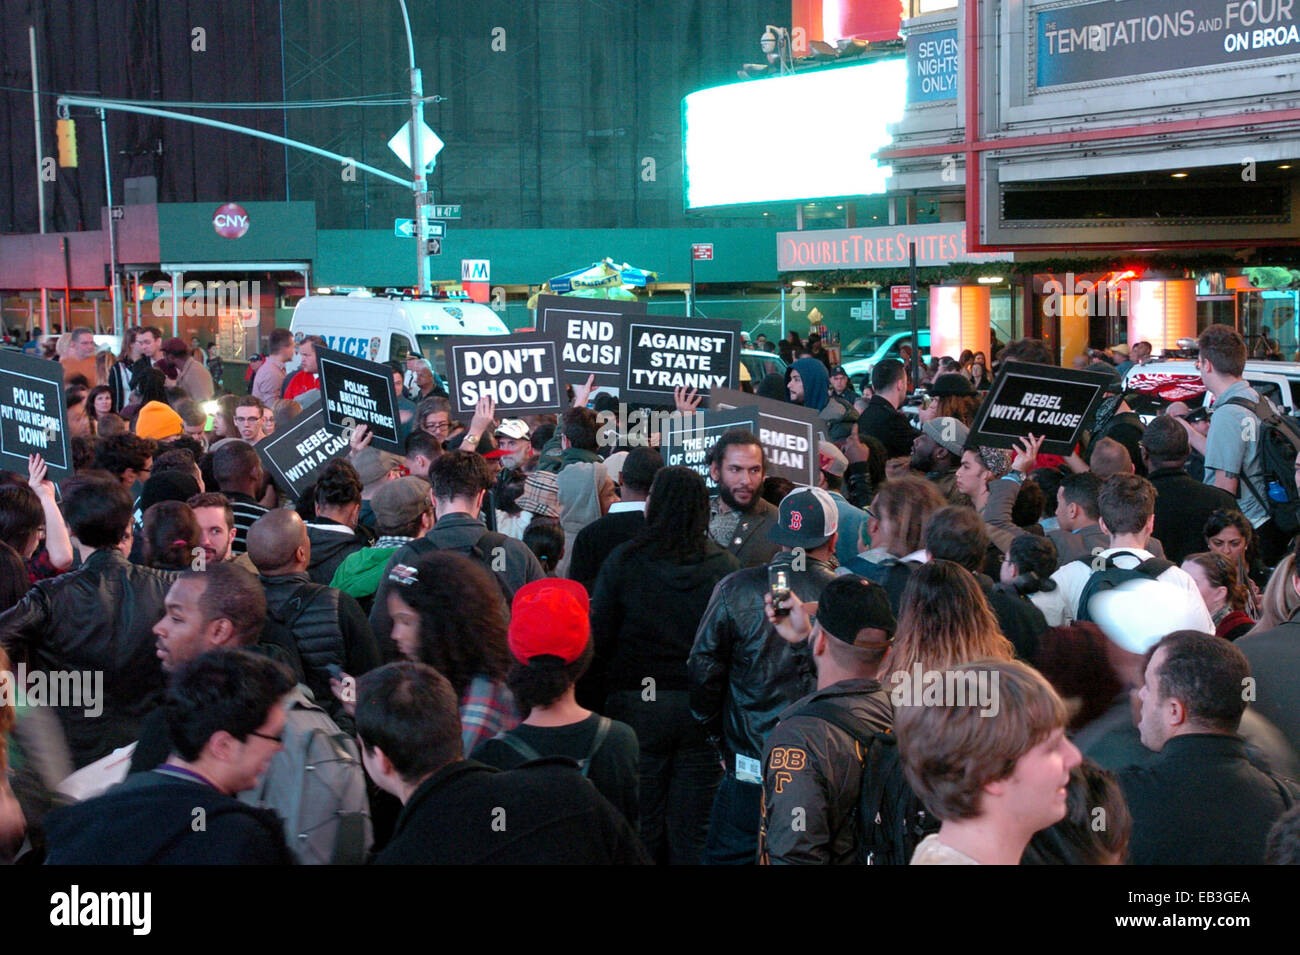 New York, USA. 24th Nov, 2014. Protesters march at Times Square in New York, the United States, on Nov. 24, 2014. A demonstration was held in New York after the announcement that police officer Darren Wilson would not be indicted for the shooting unarmed 18-year-old Michael Brown in Ferguson on August. © David Torres/Xinhua/Alamy Live News Stock Photo